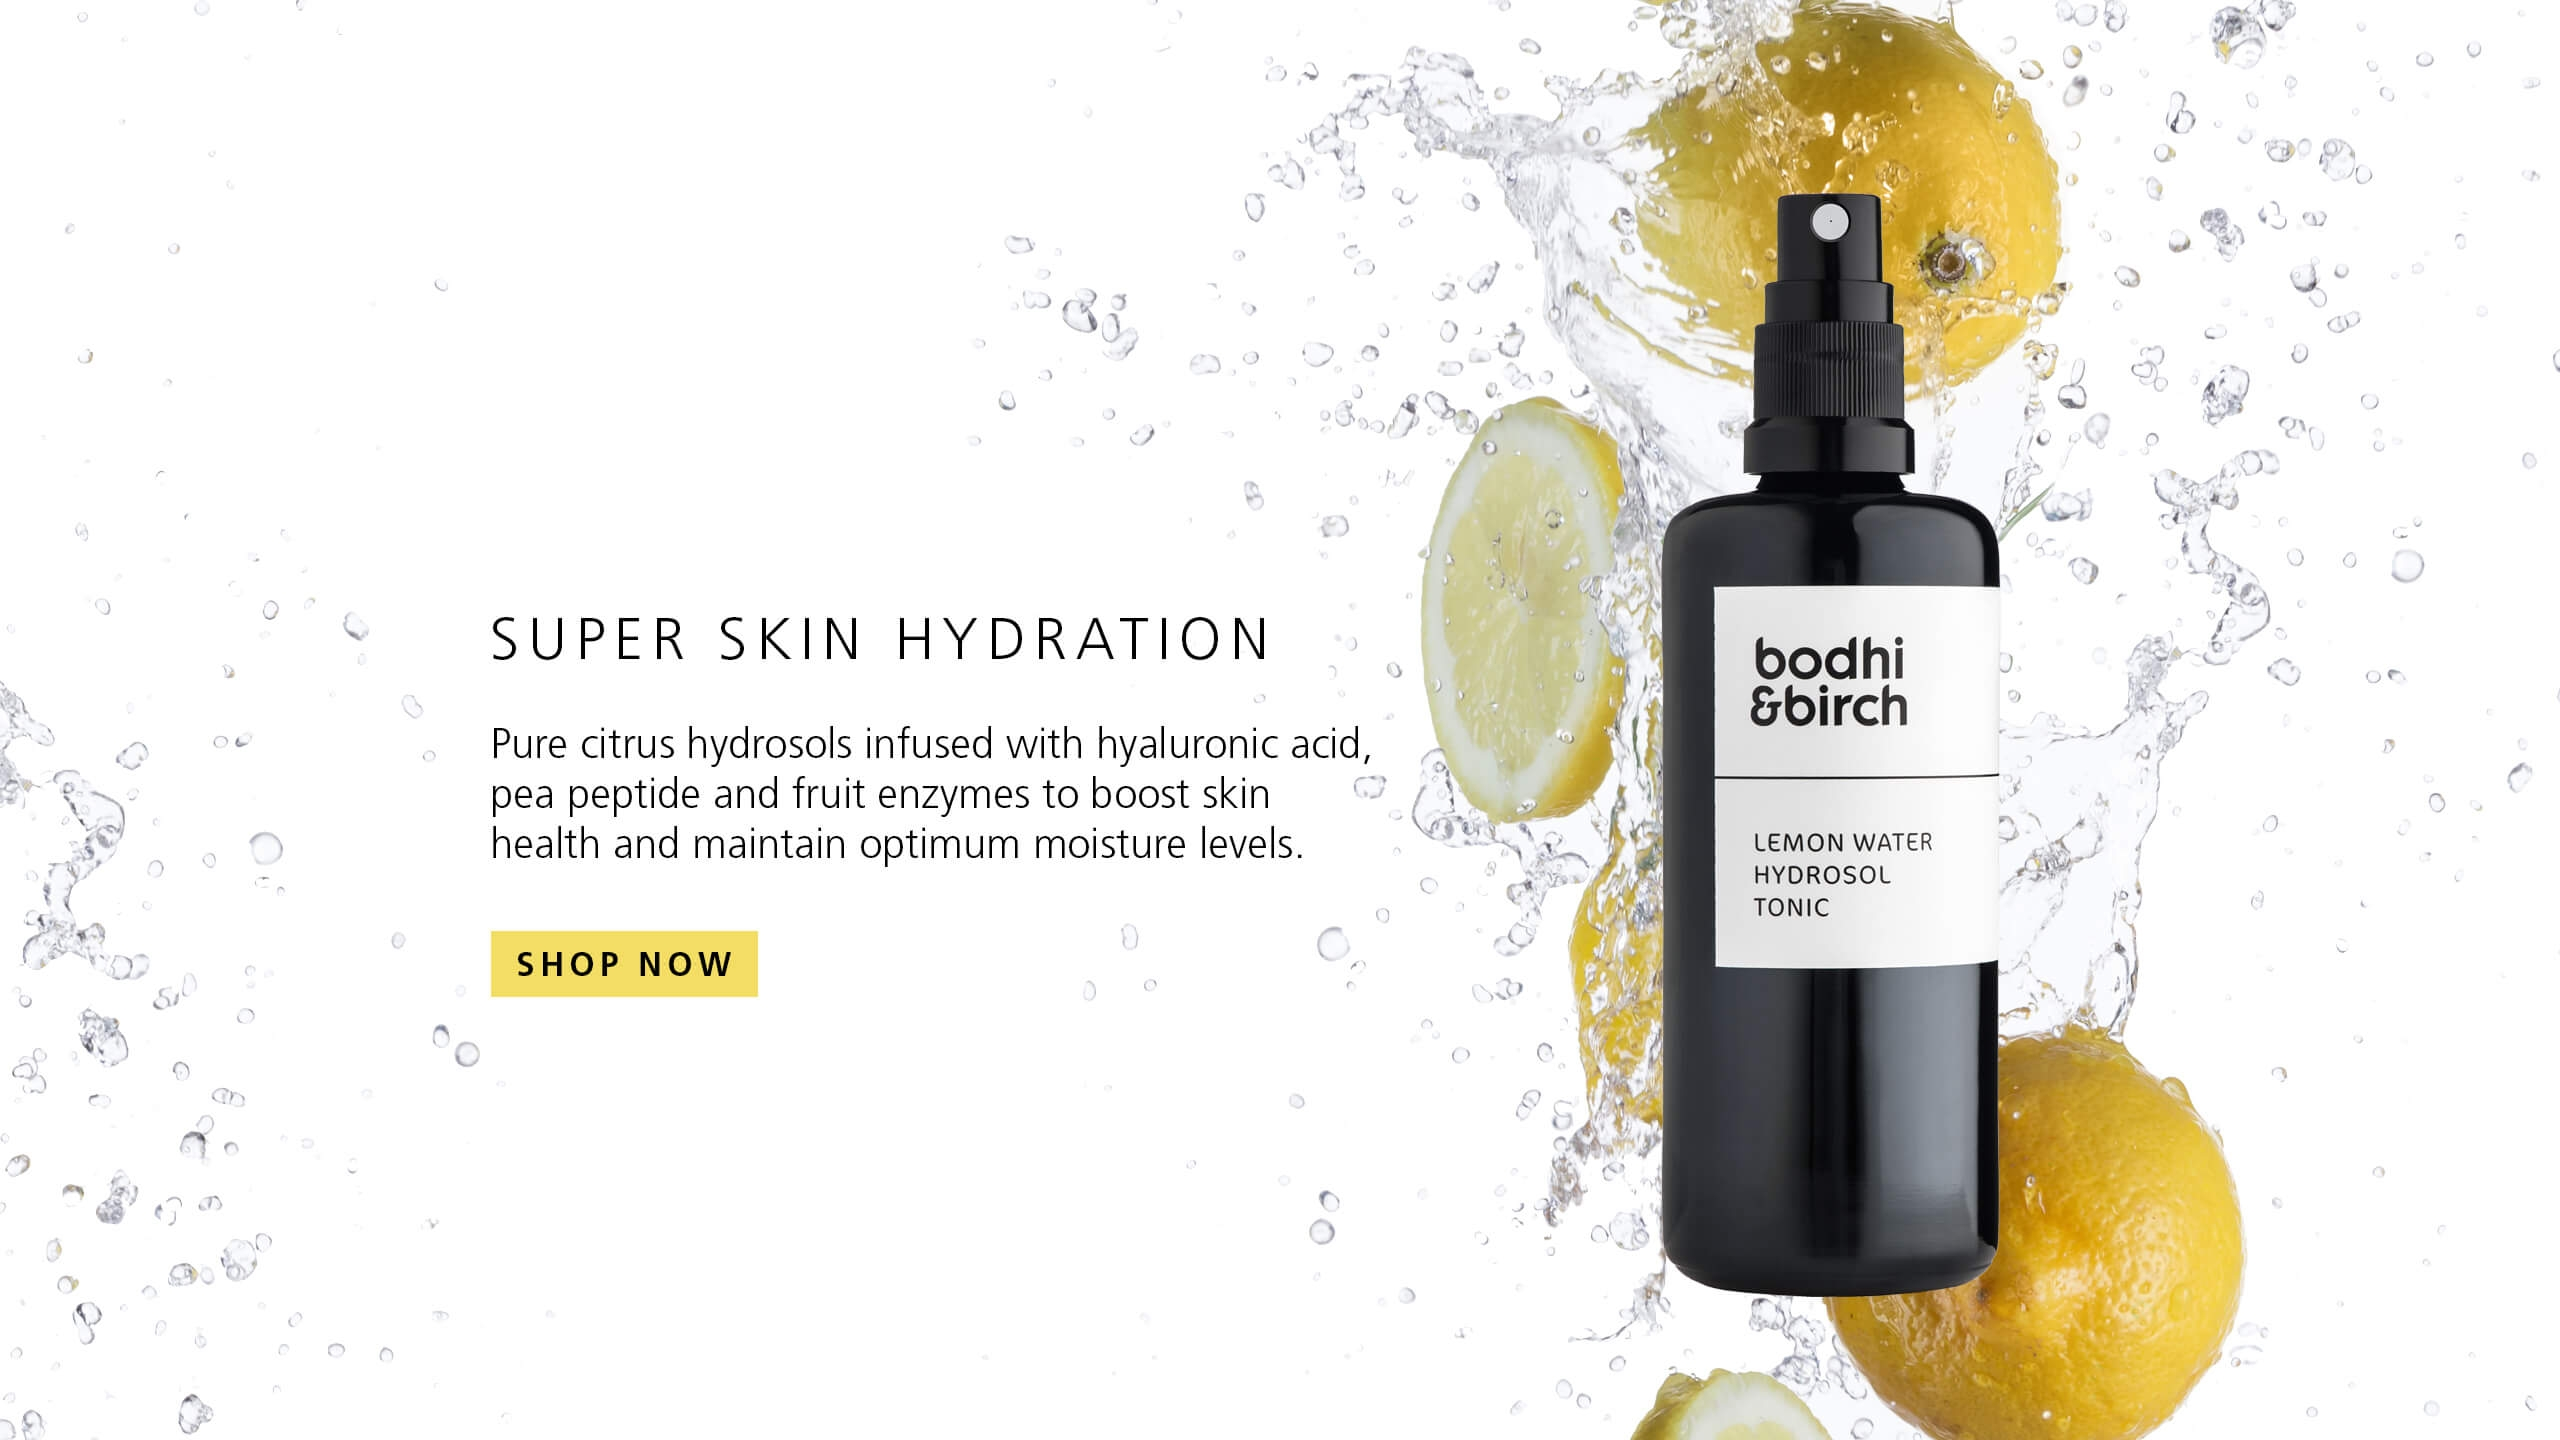 Super Skin Hydration